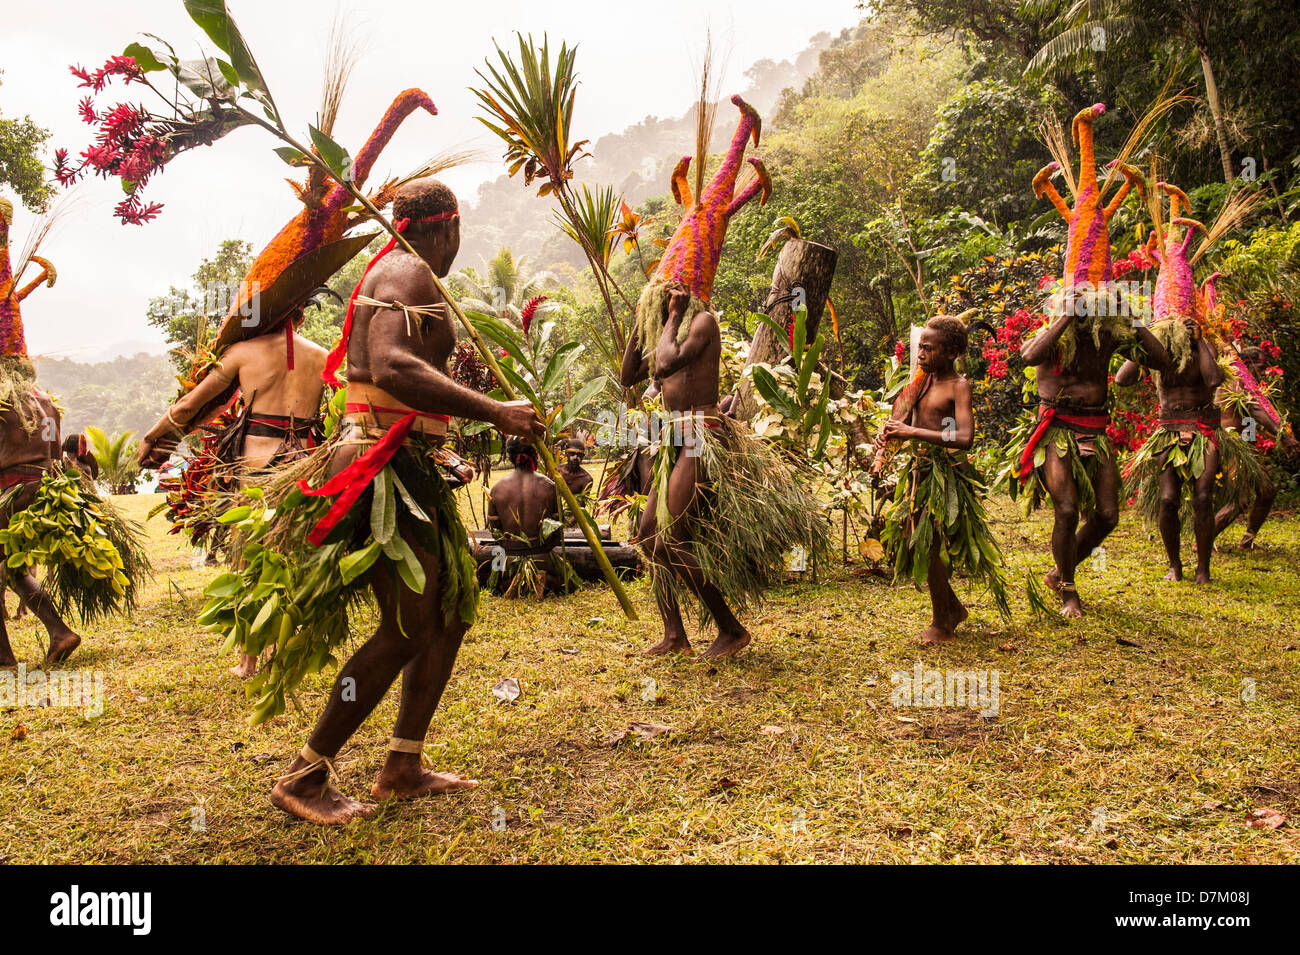 Parrat dancers entertain villagers and tourists during the traditional cultural festival in Labo village, Malekula, - Stock Image